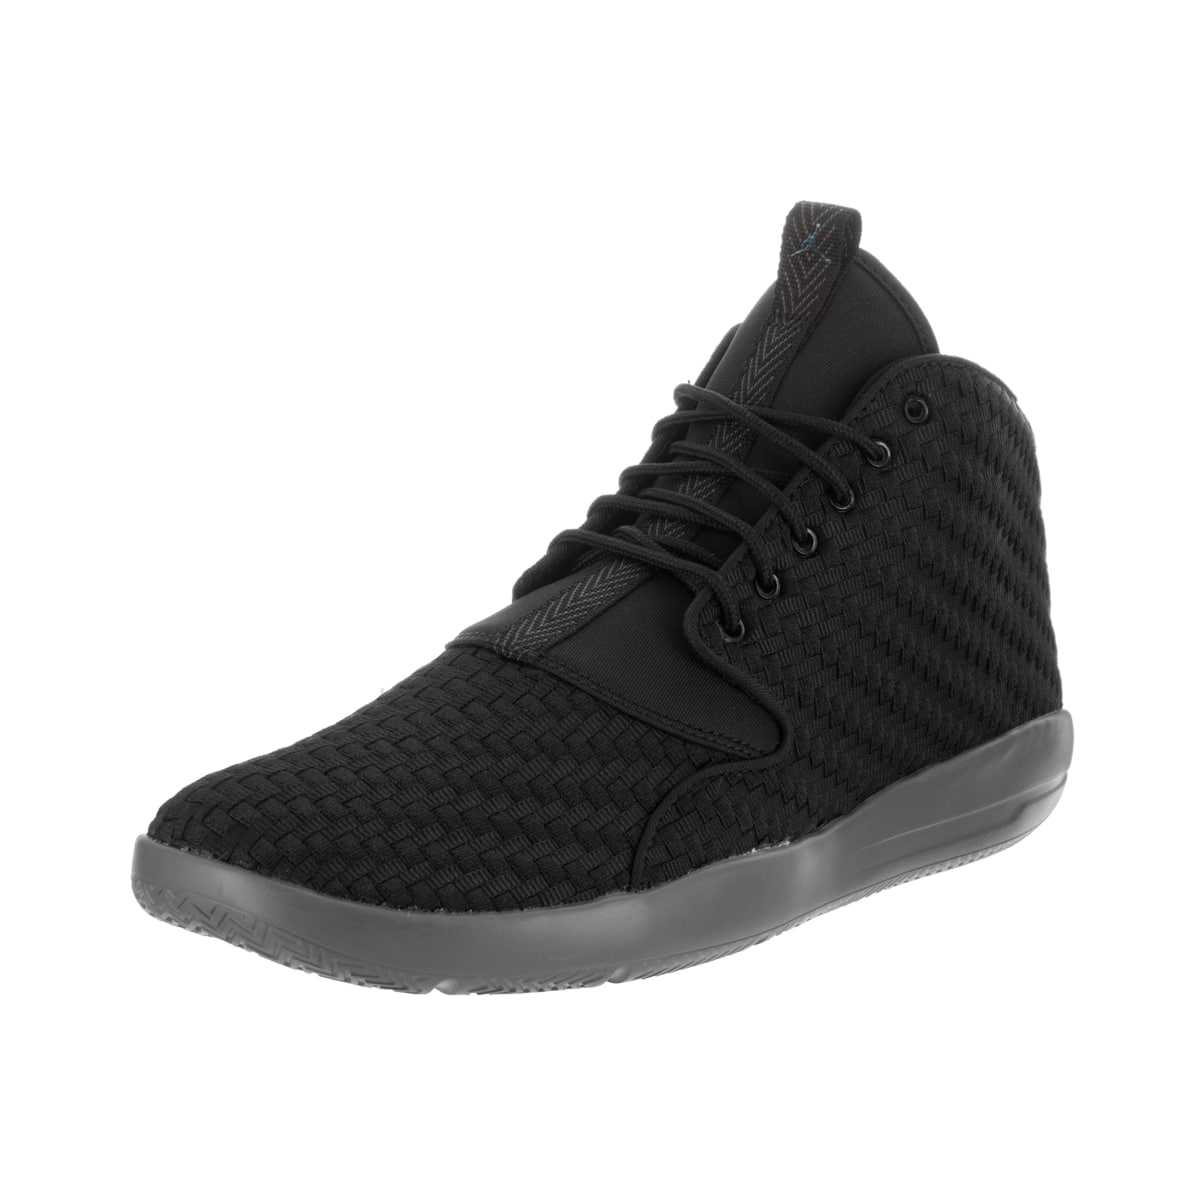 nike basketball shoes mens